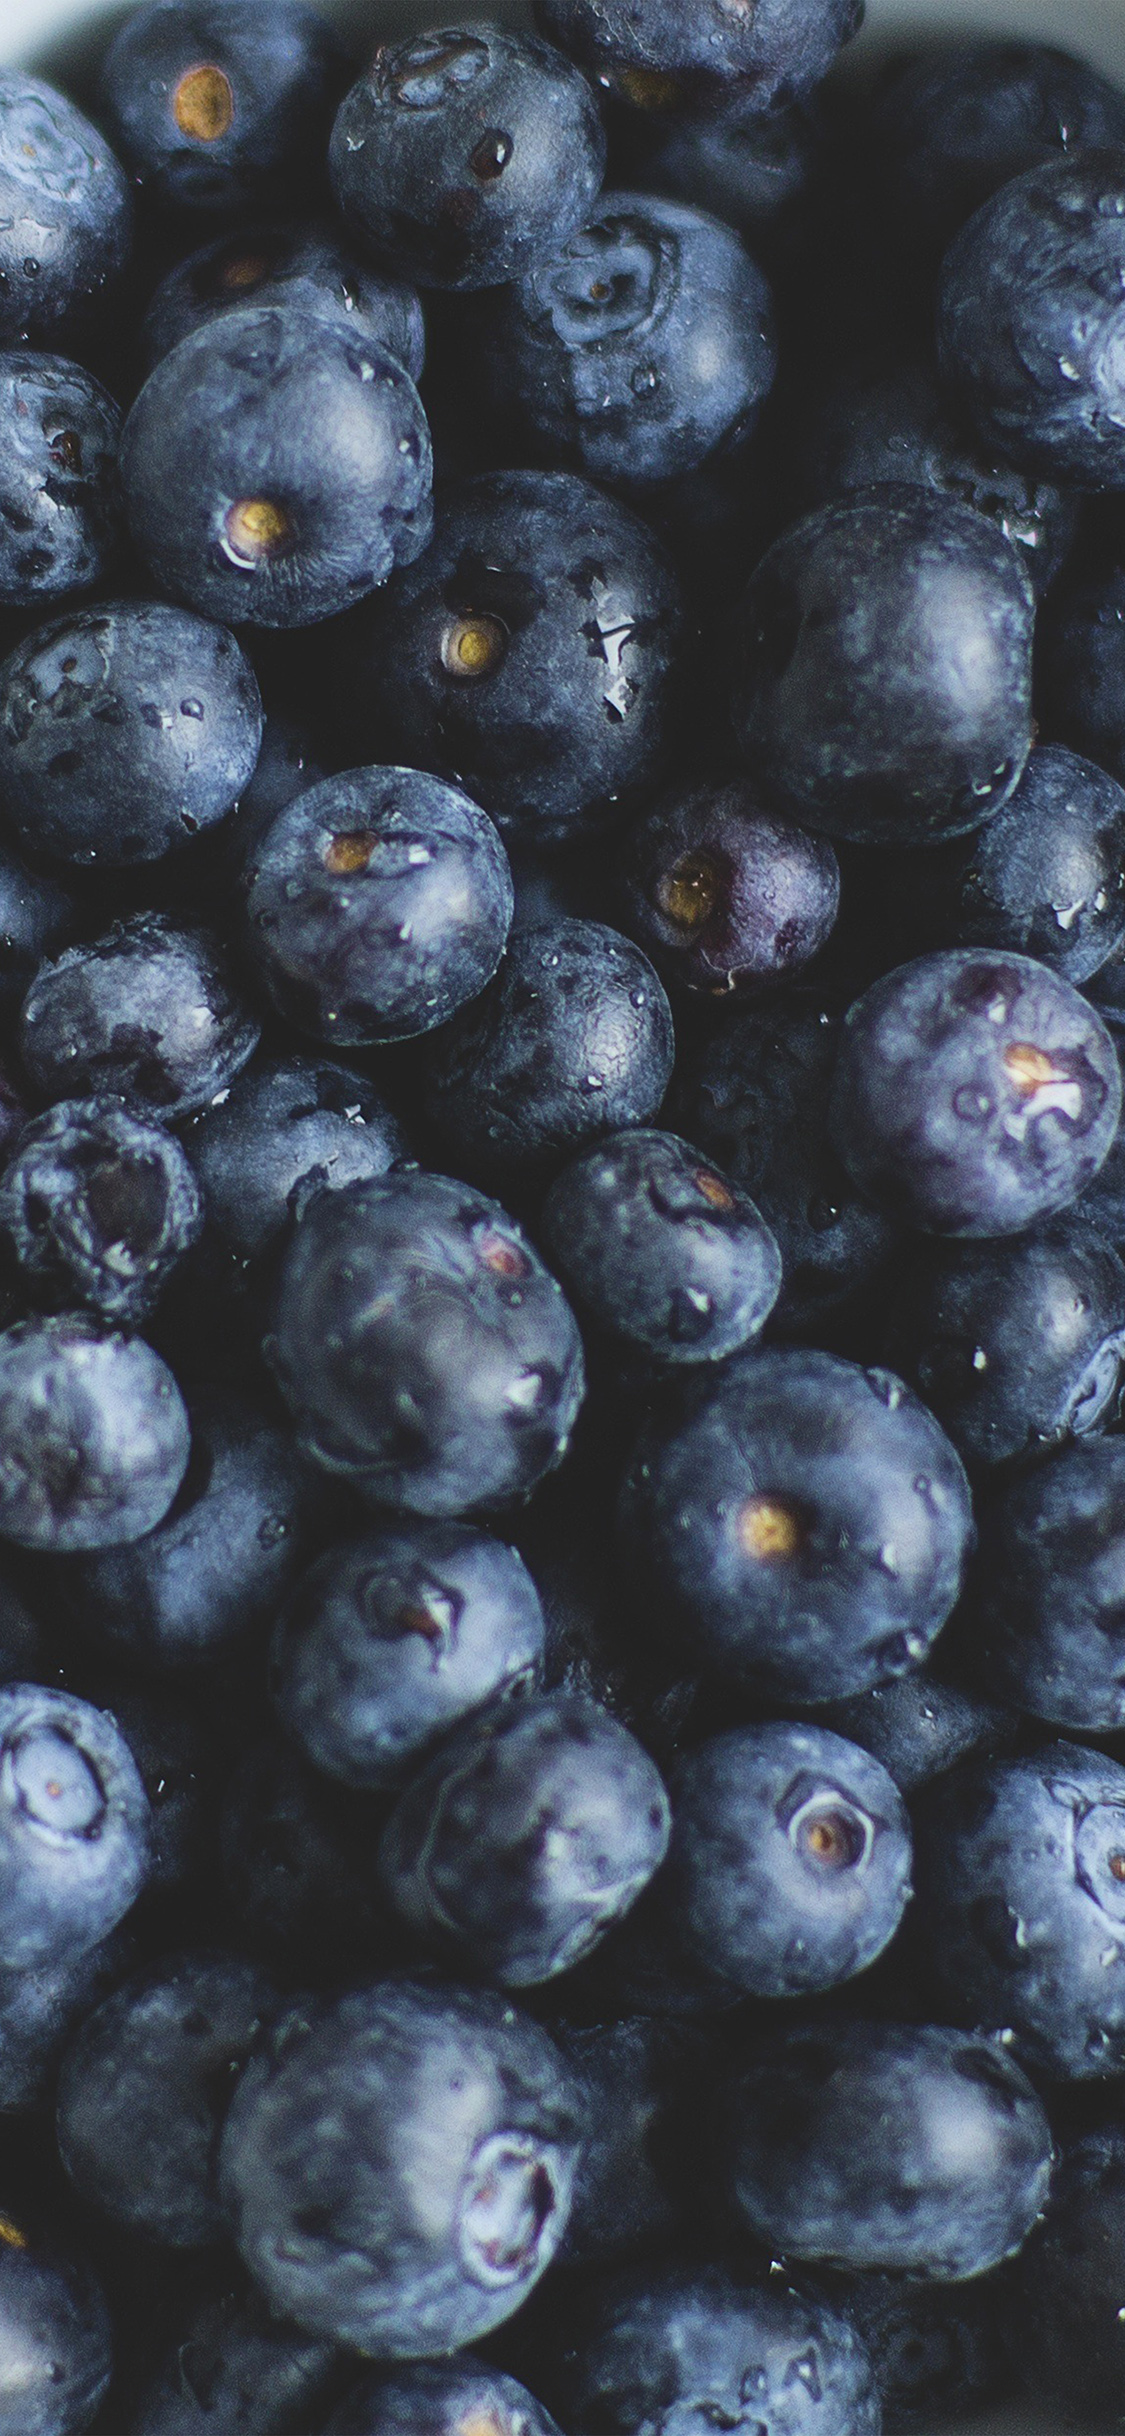 Papers Co Iphone Wallpaper Na76 Blue Berry Healthy Fruit Eat Food Nature